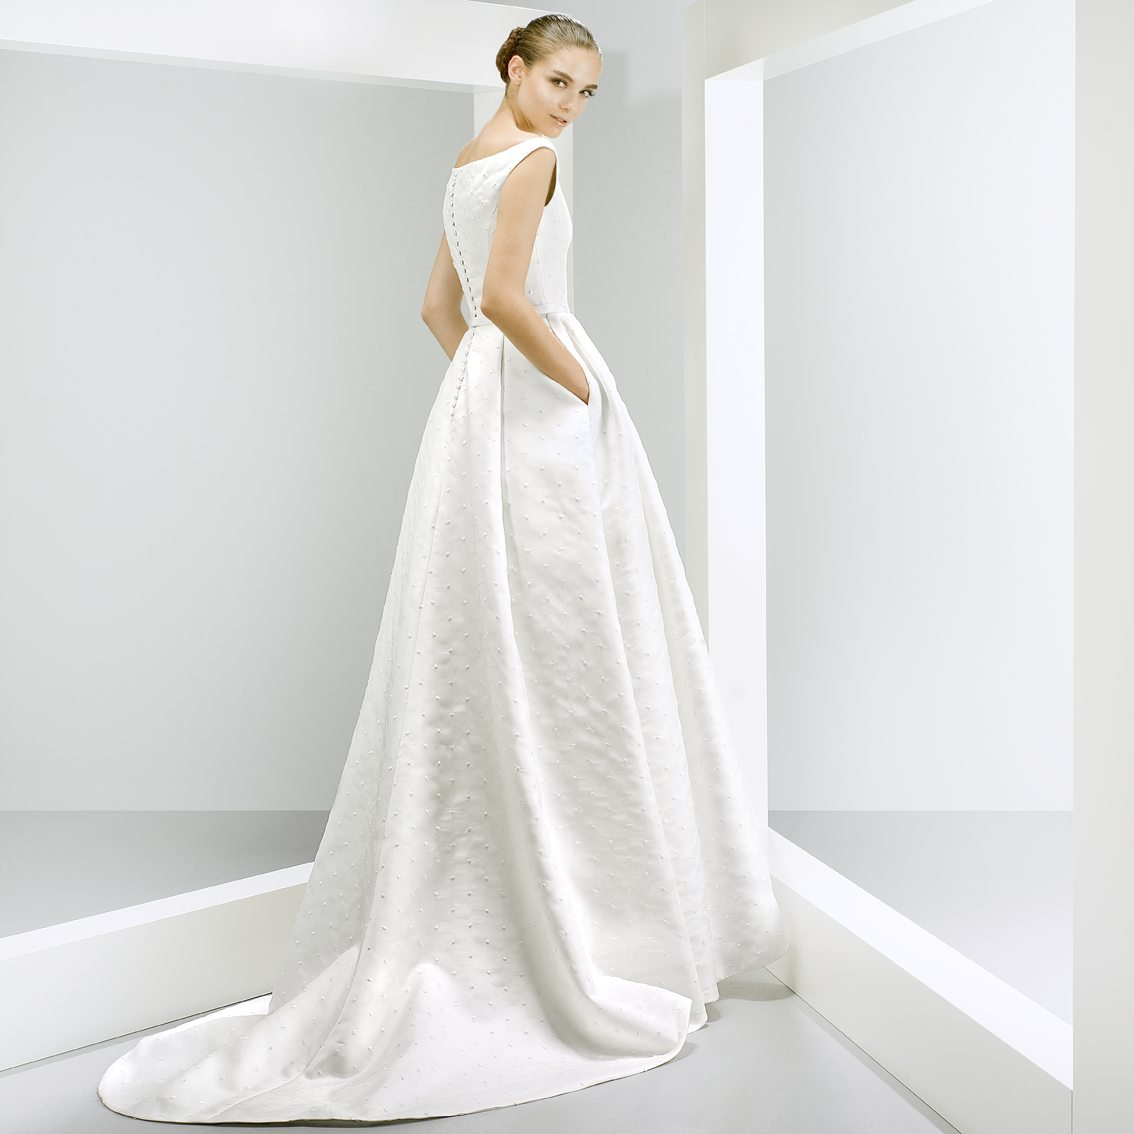 The White RoomJesus Peiro Wedding Dresses | Jesus Peiro Designer Wedding Dresses Gloucester